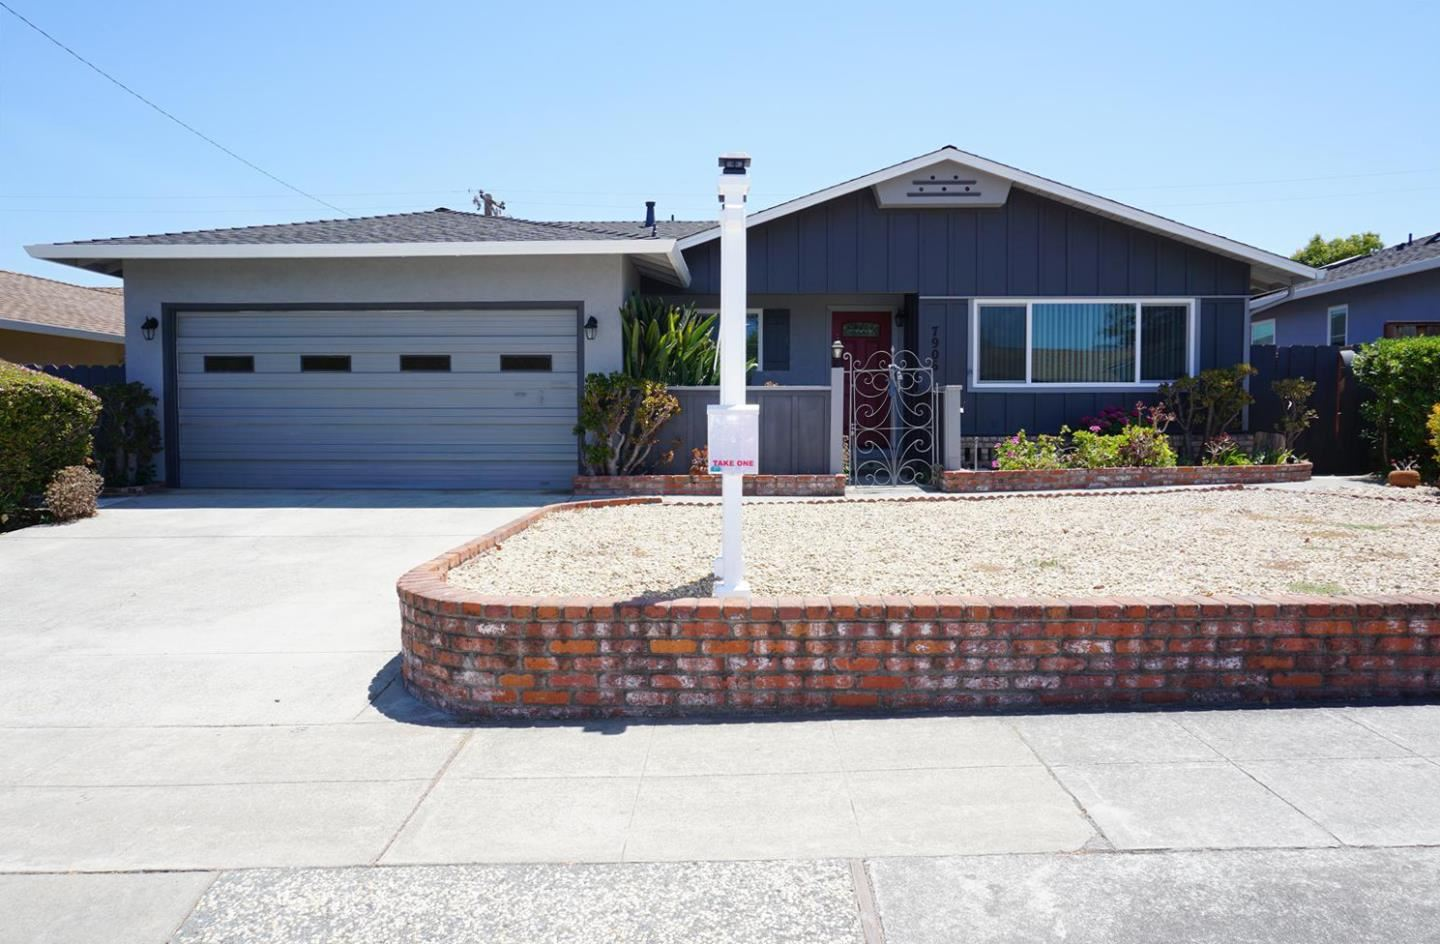 Photo for 7906 October Way, CUPERTINO, CA 95014 (MLS # ML81853909)